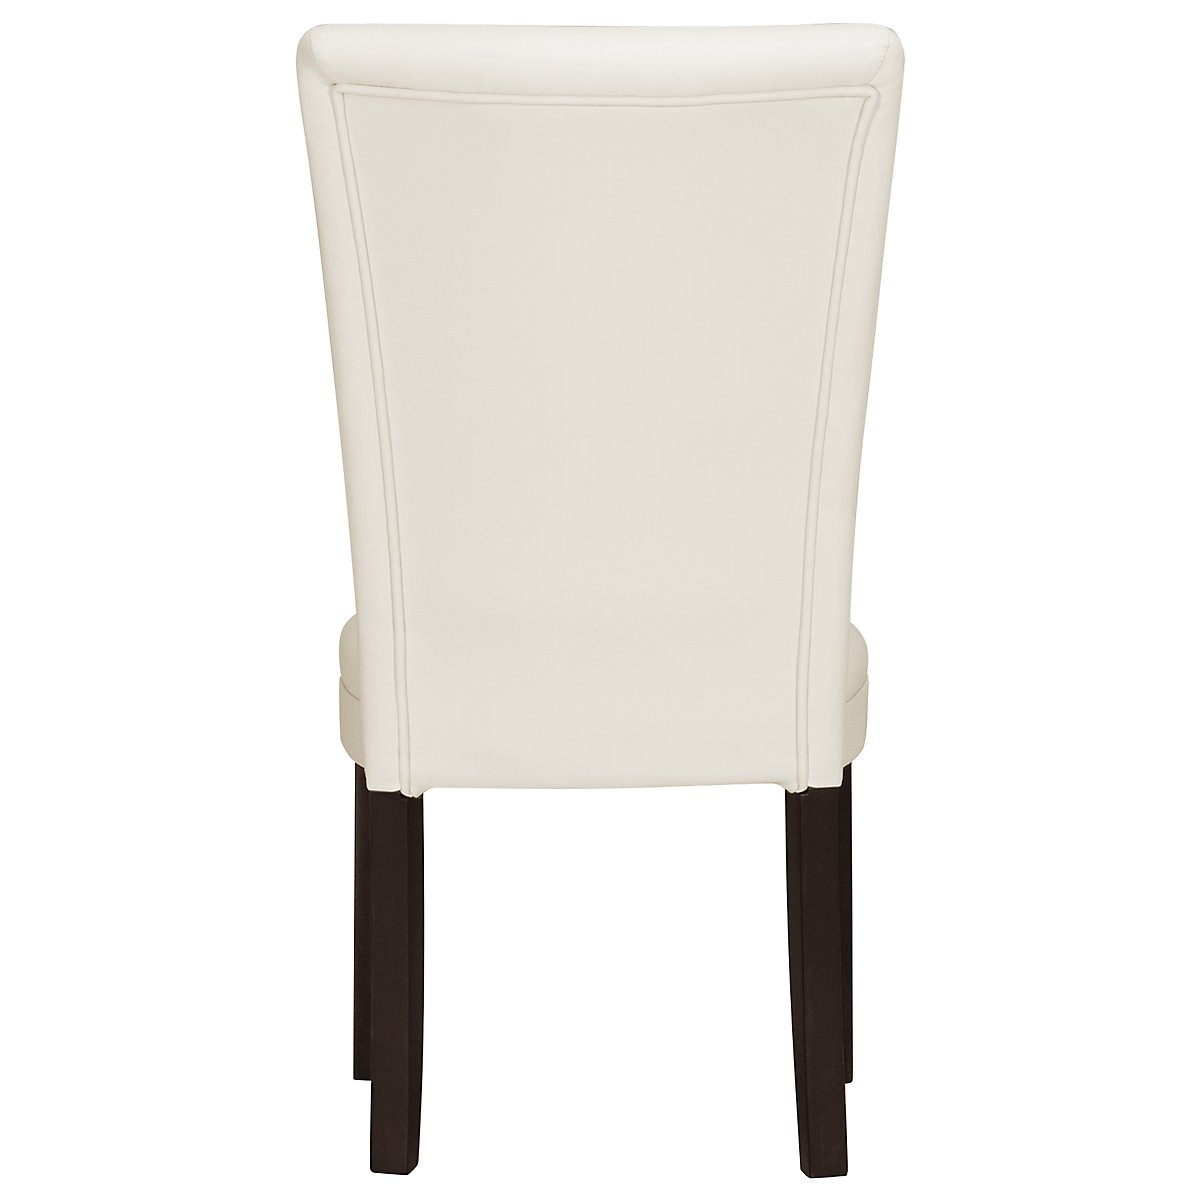 Delano White Bonded Leather Bonded Leather Side Chair